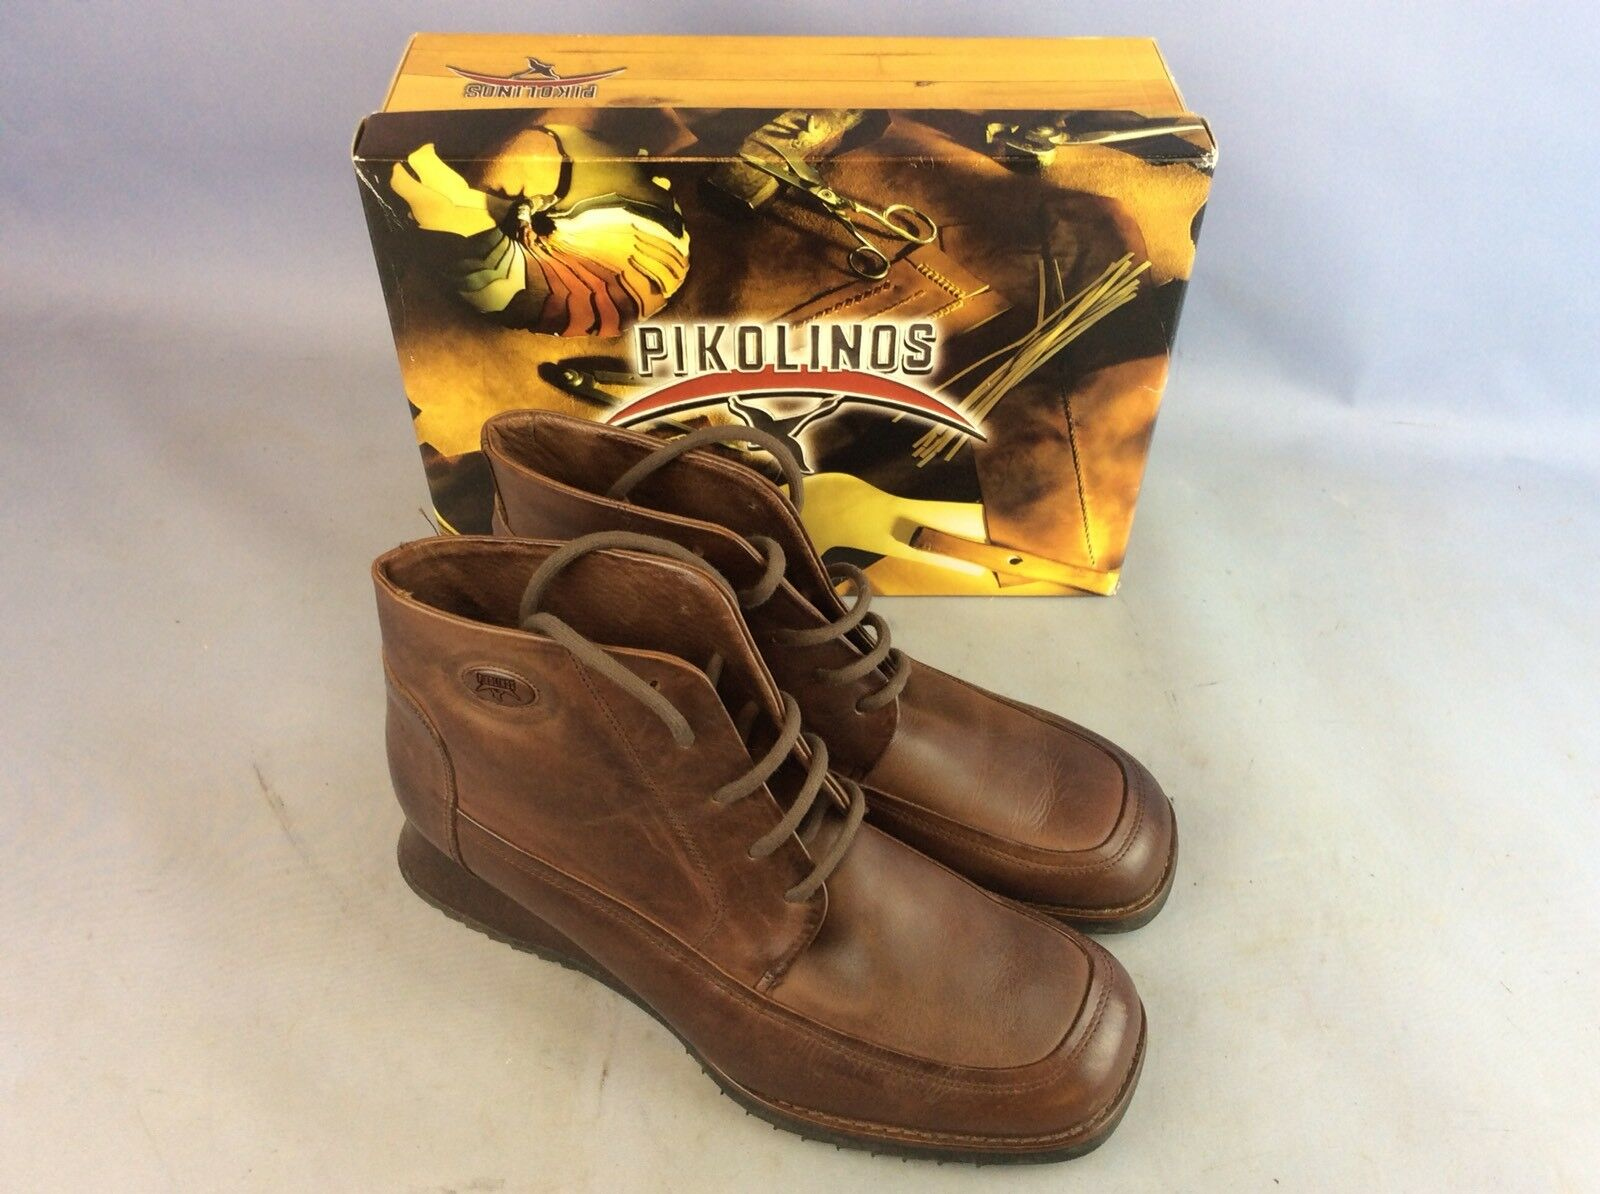 Pikolinos Mens Casual Boots, BROWN 41-SIZE 7